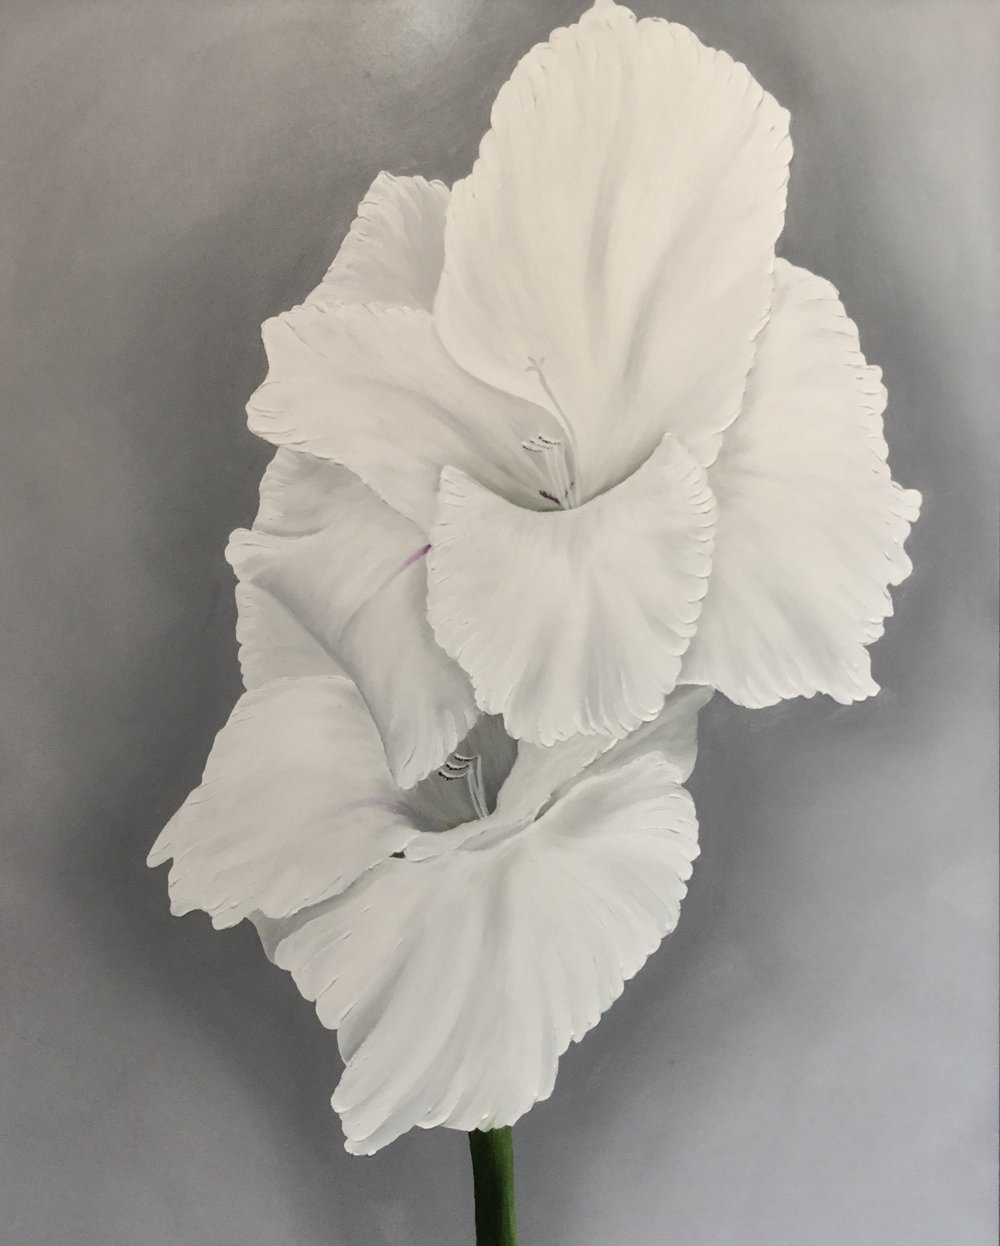 White Gladiolus Double , 2017 3024726156717 Oil on canvas 30 x 24 inches